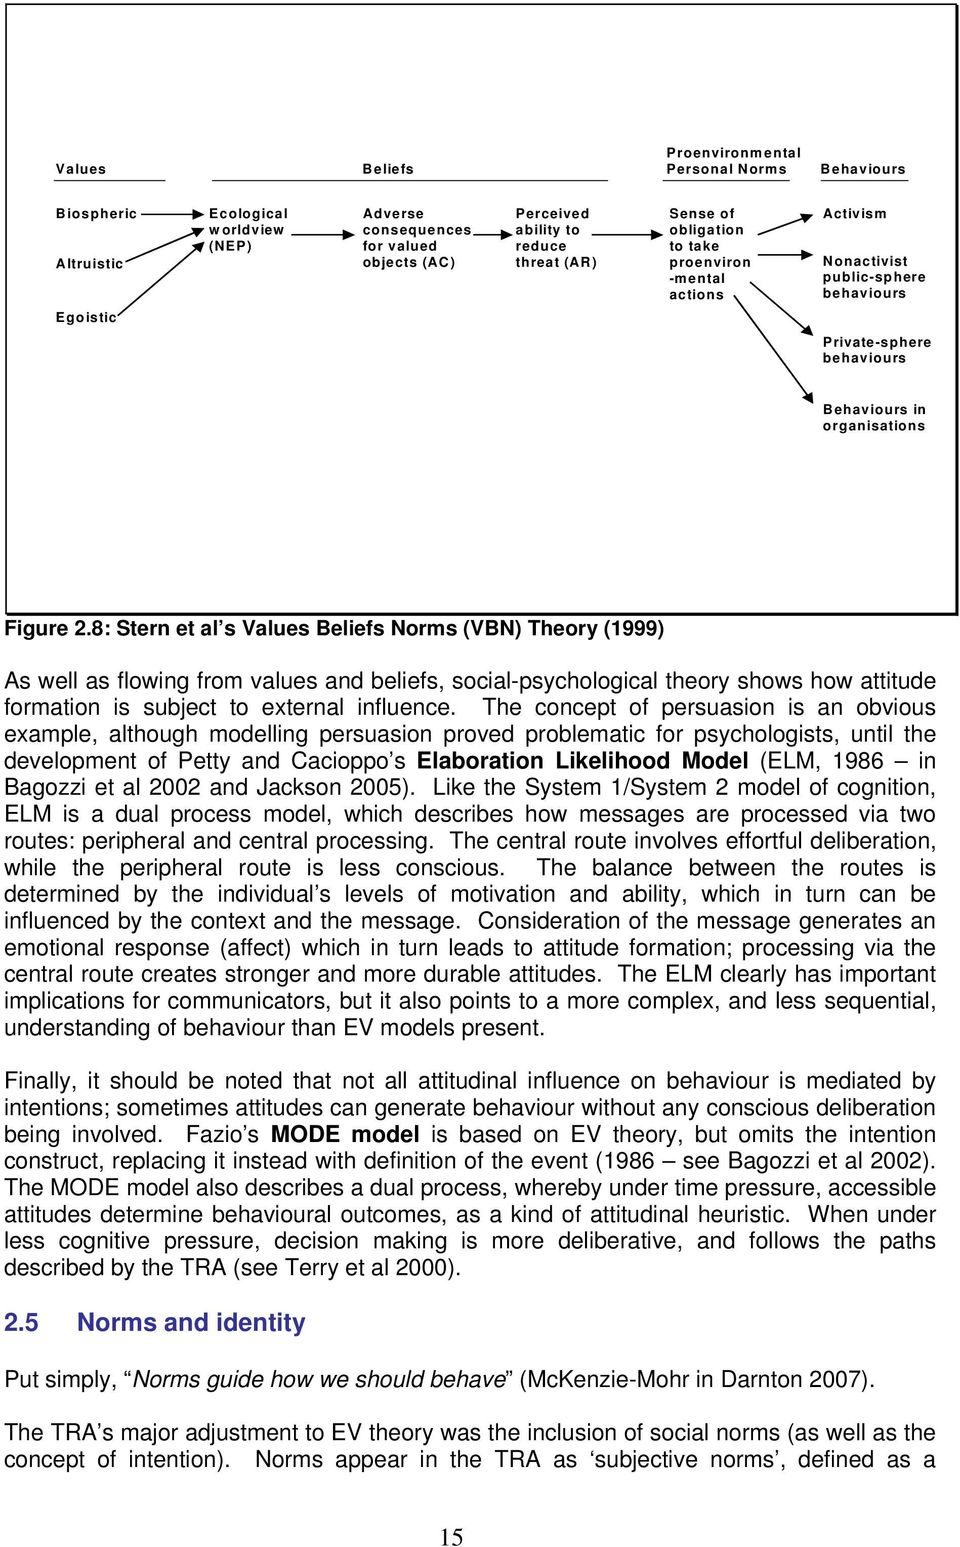 8: Stern et al s Values Beliefs Norms (VBN) Theory (1999) As well as flowing from values and beliefs, social-psychological theory shows how attitude formation is subject to external influence.